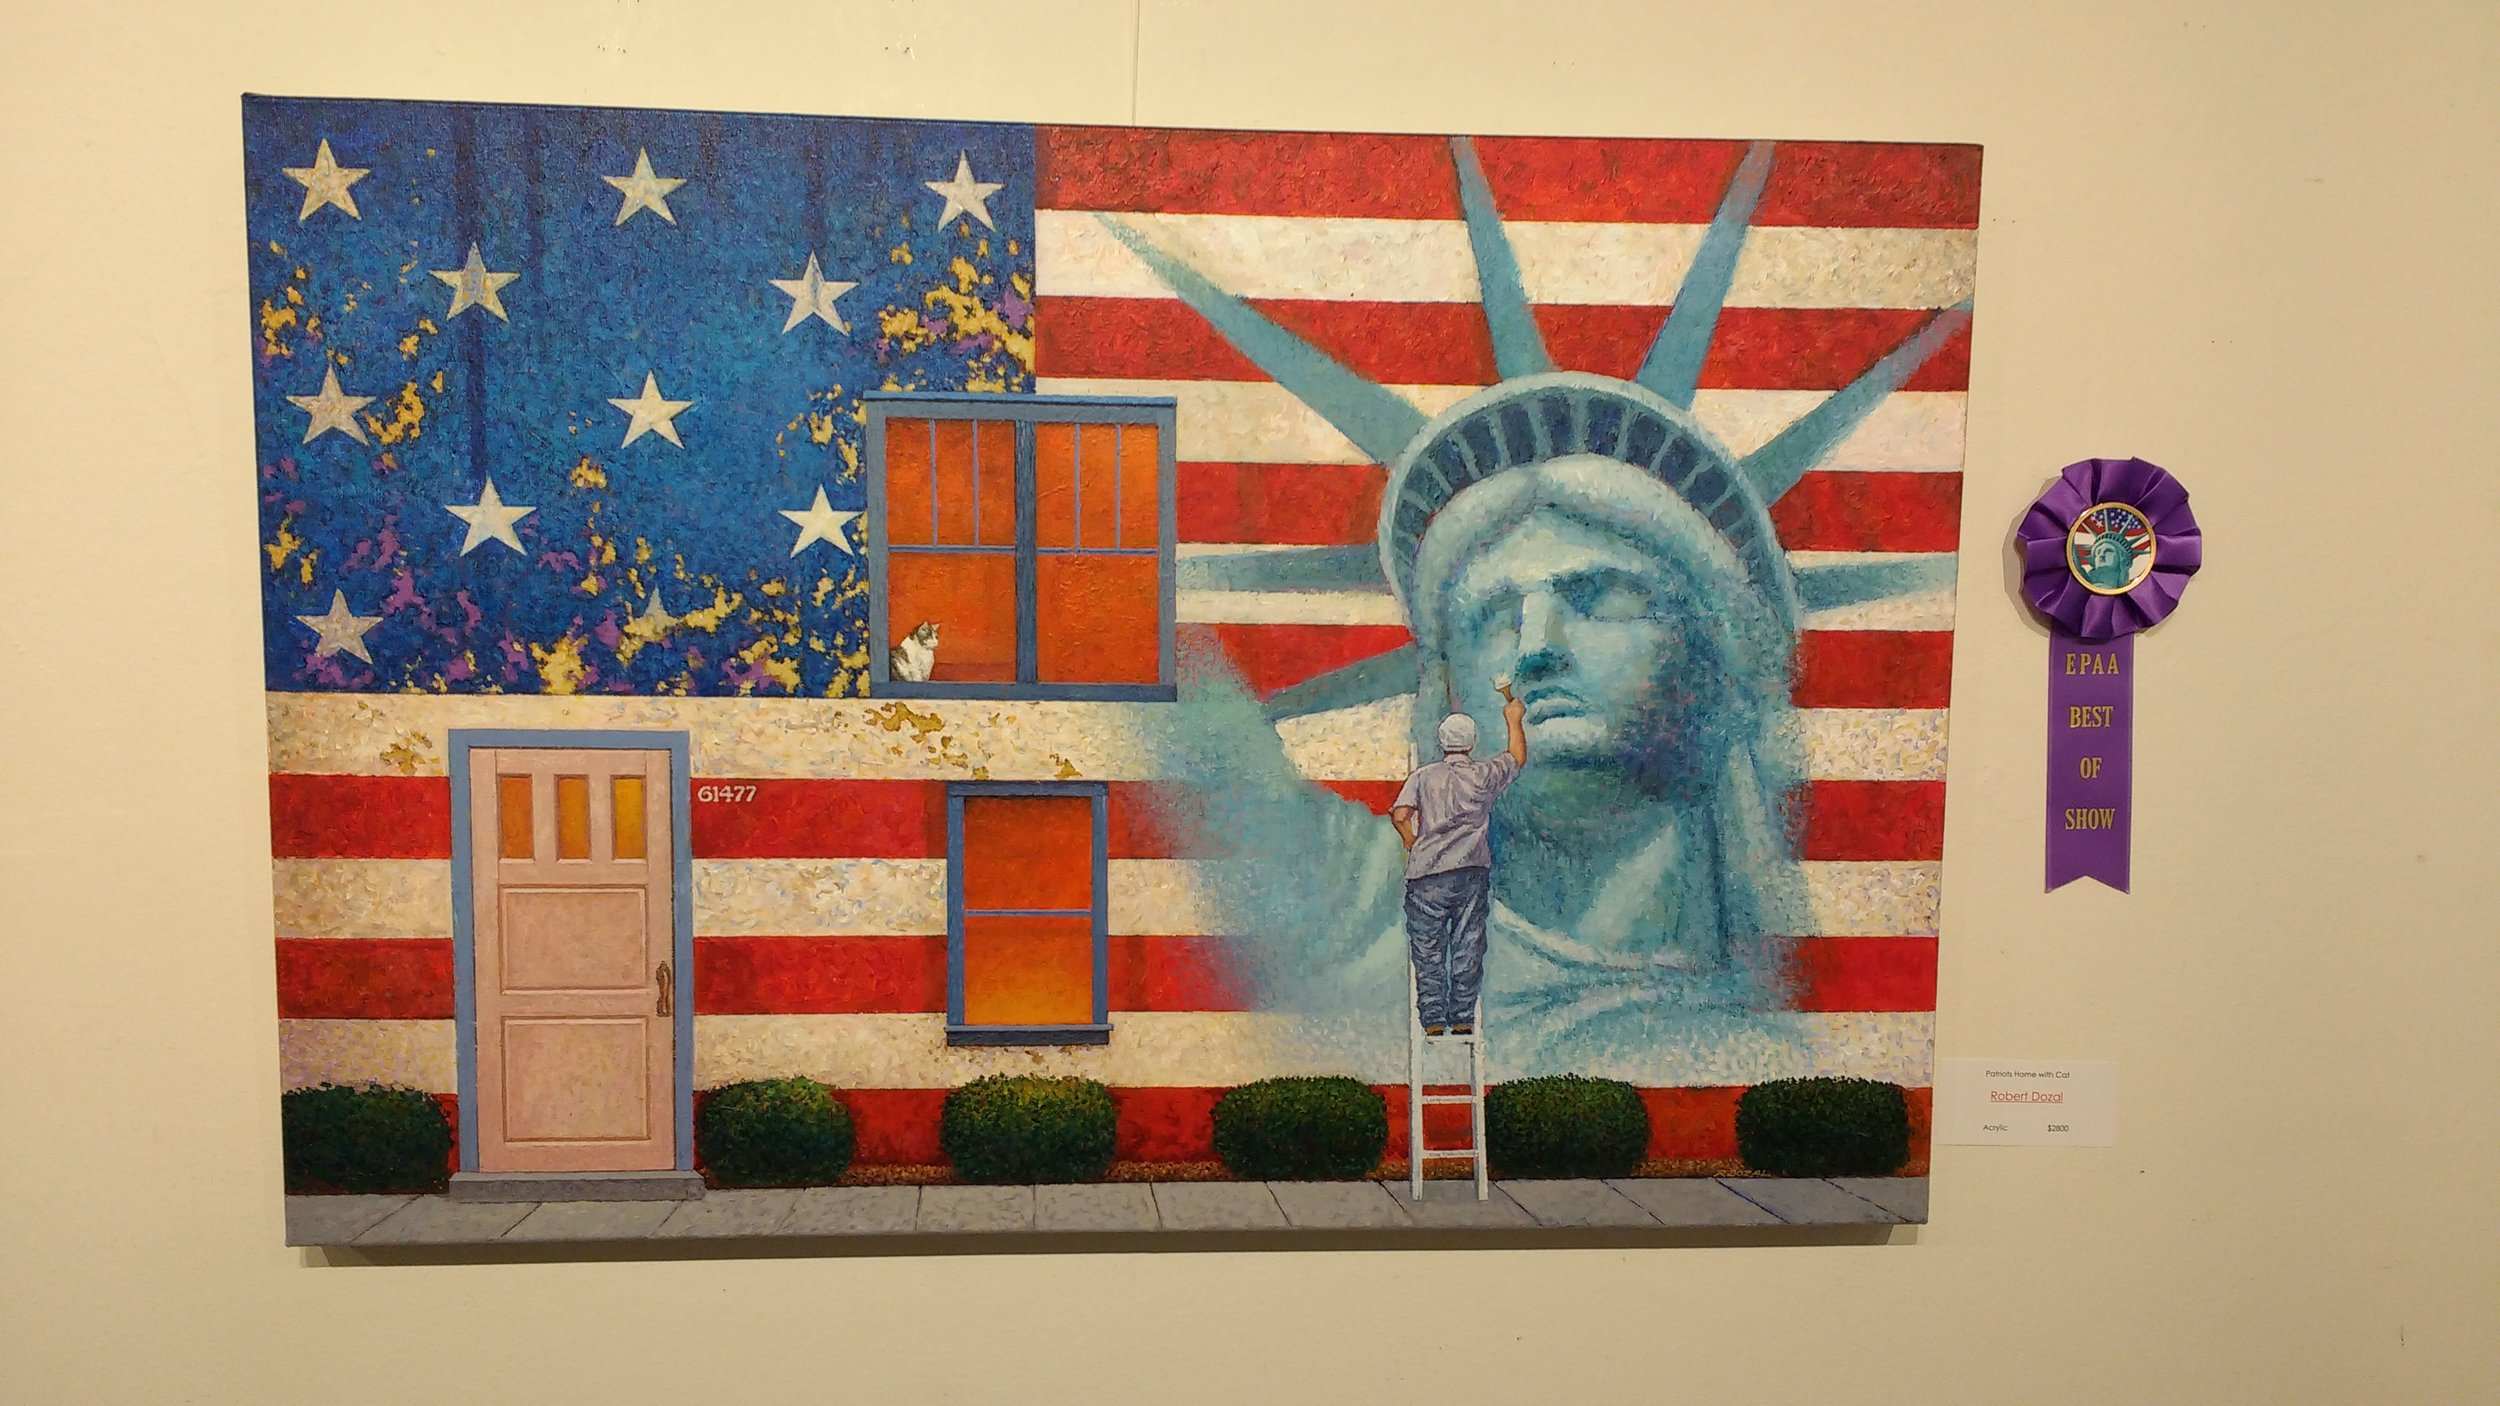 Patriot's Home with Cat by Robert Dozal.  Best of Show